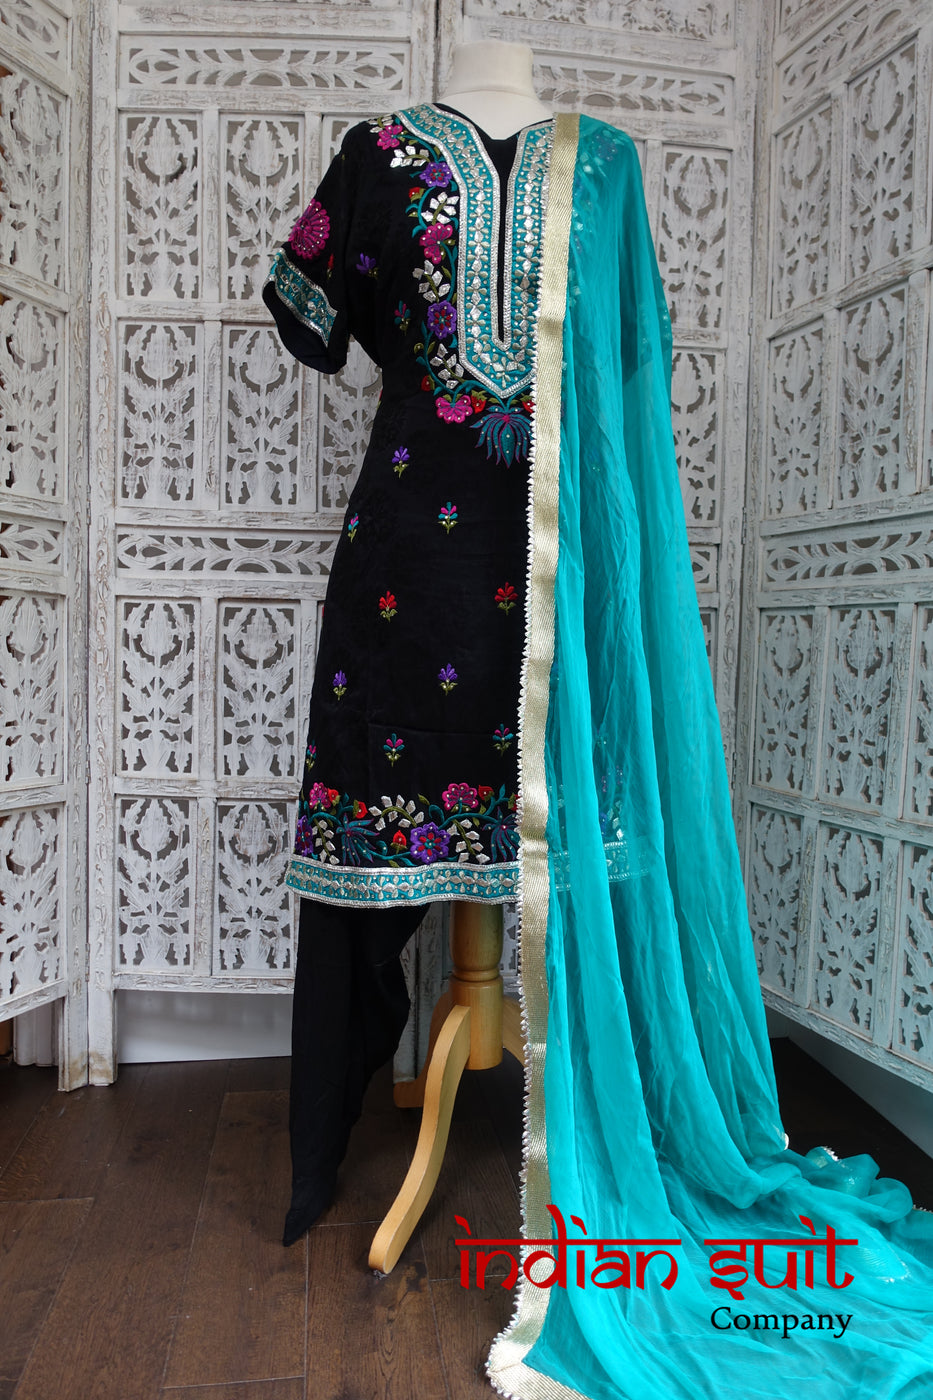 Black & Blue Salwar Kameez -UK 20 / EU 46 - Preloved - Indian Suit Company